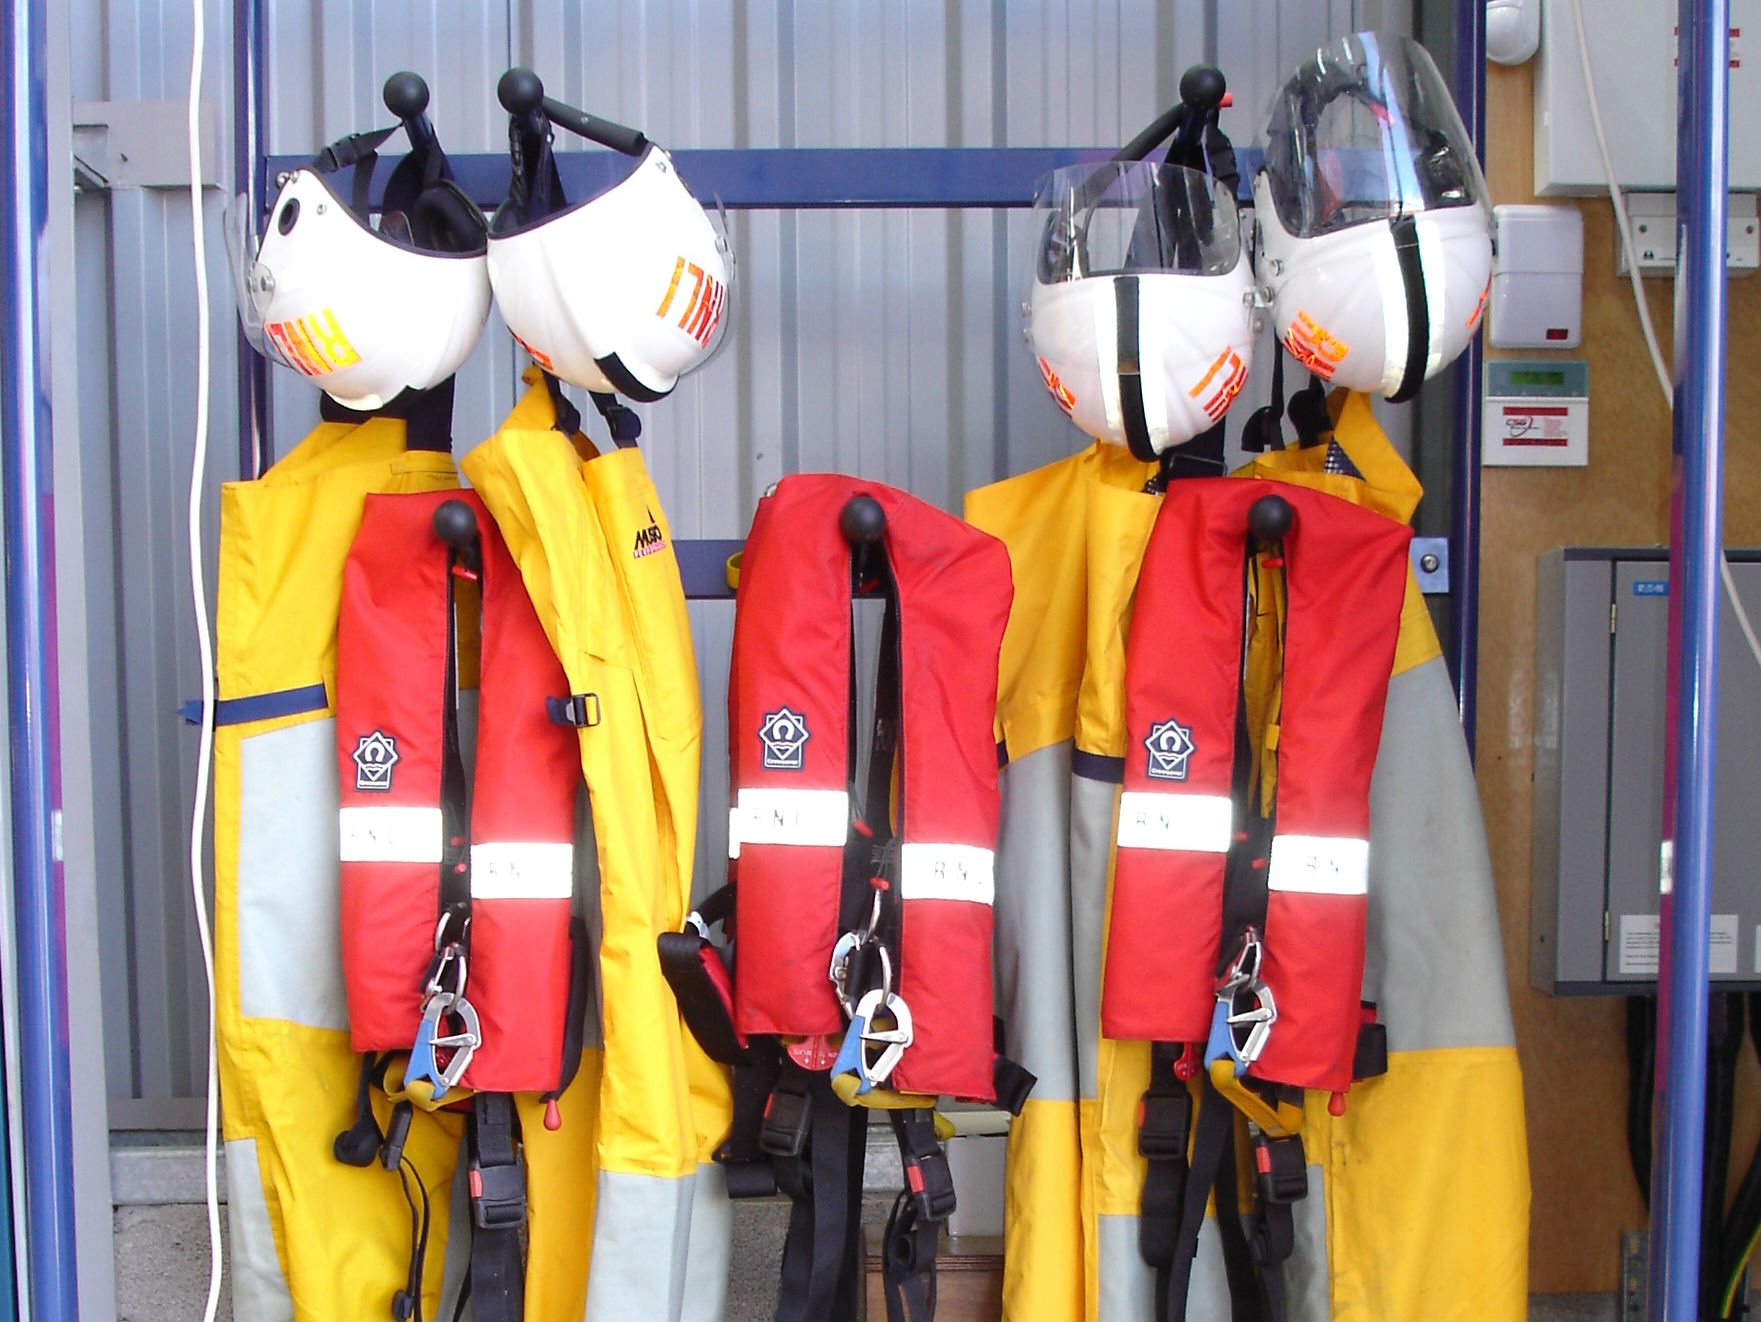 RNLI Safety Video Launched